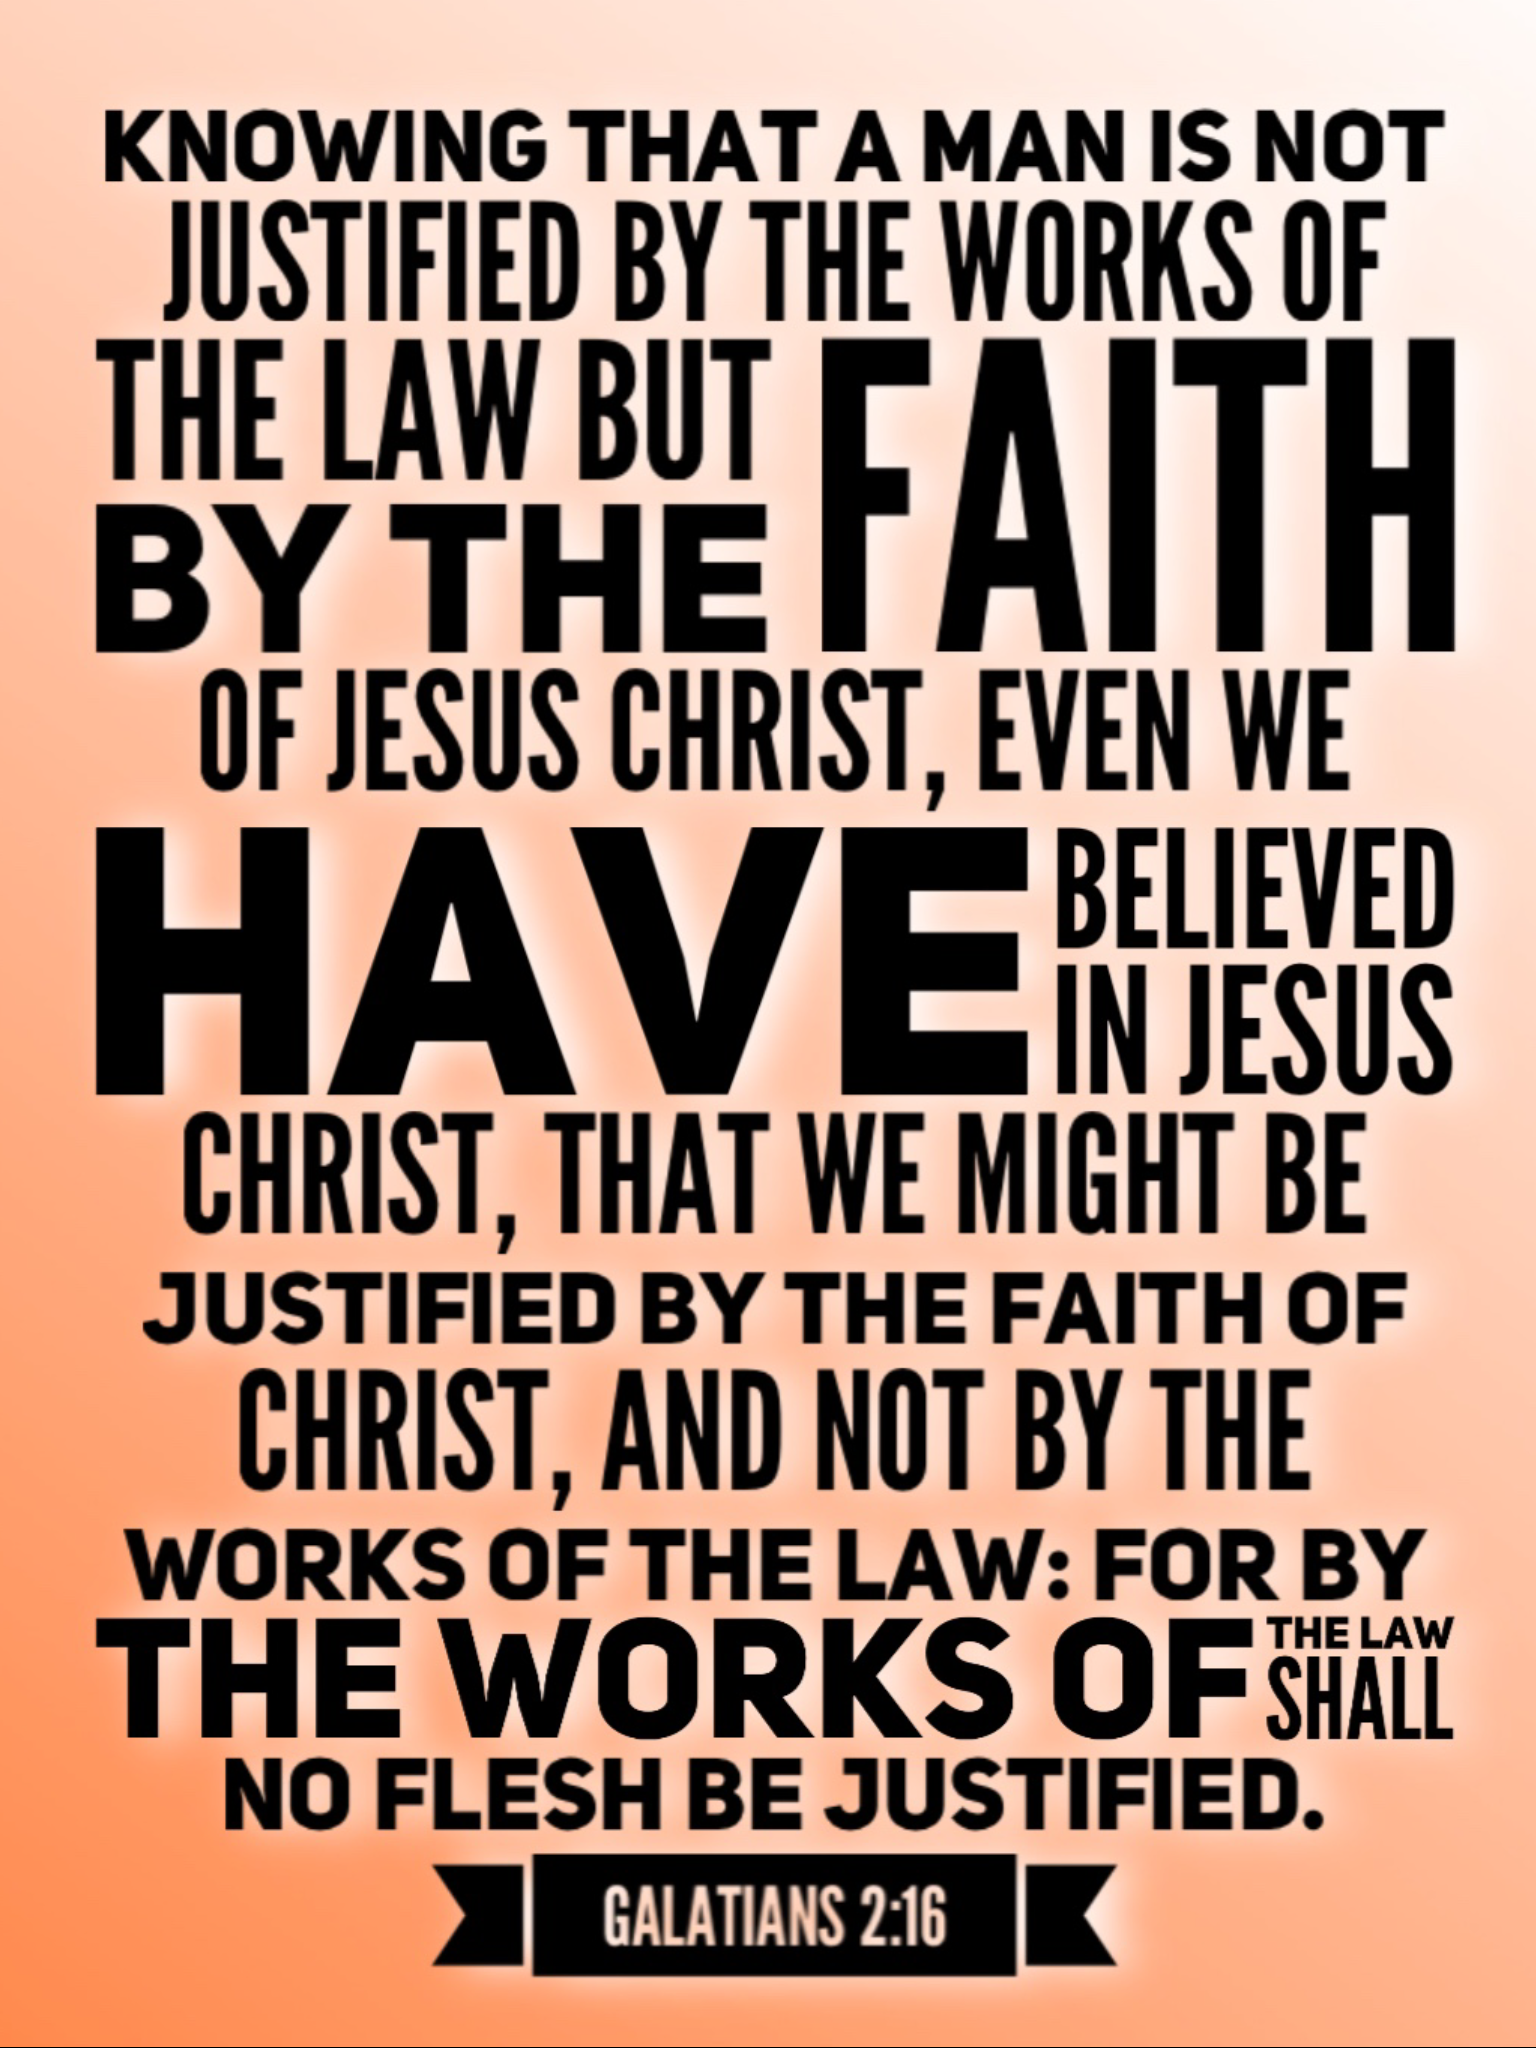 Knowing that a man is not justified by the works of the law, but by the faith of Jesus Christ ...